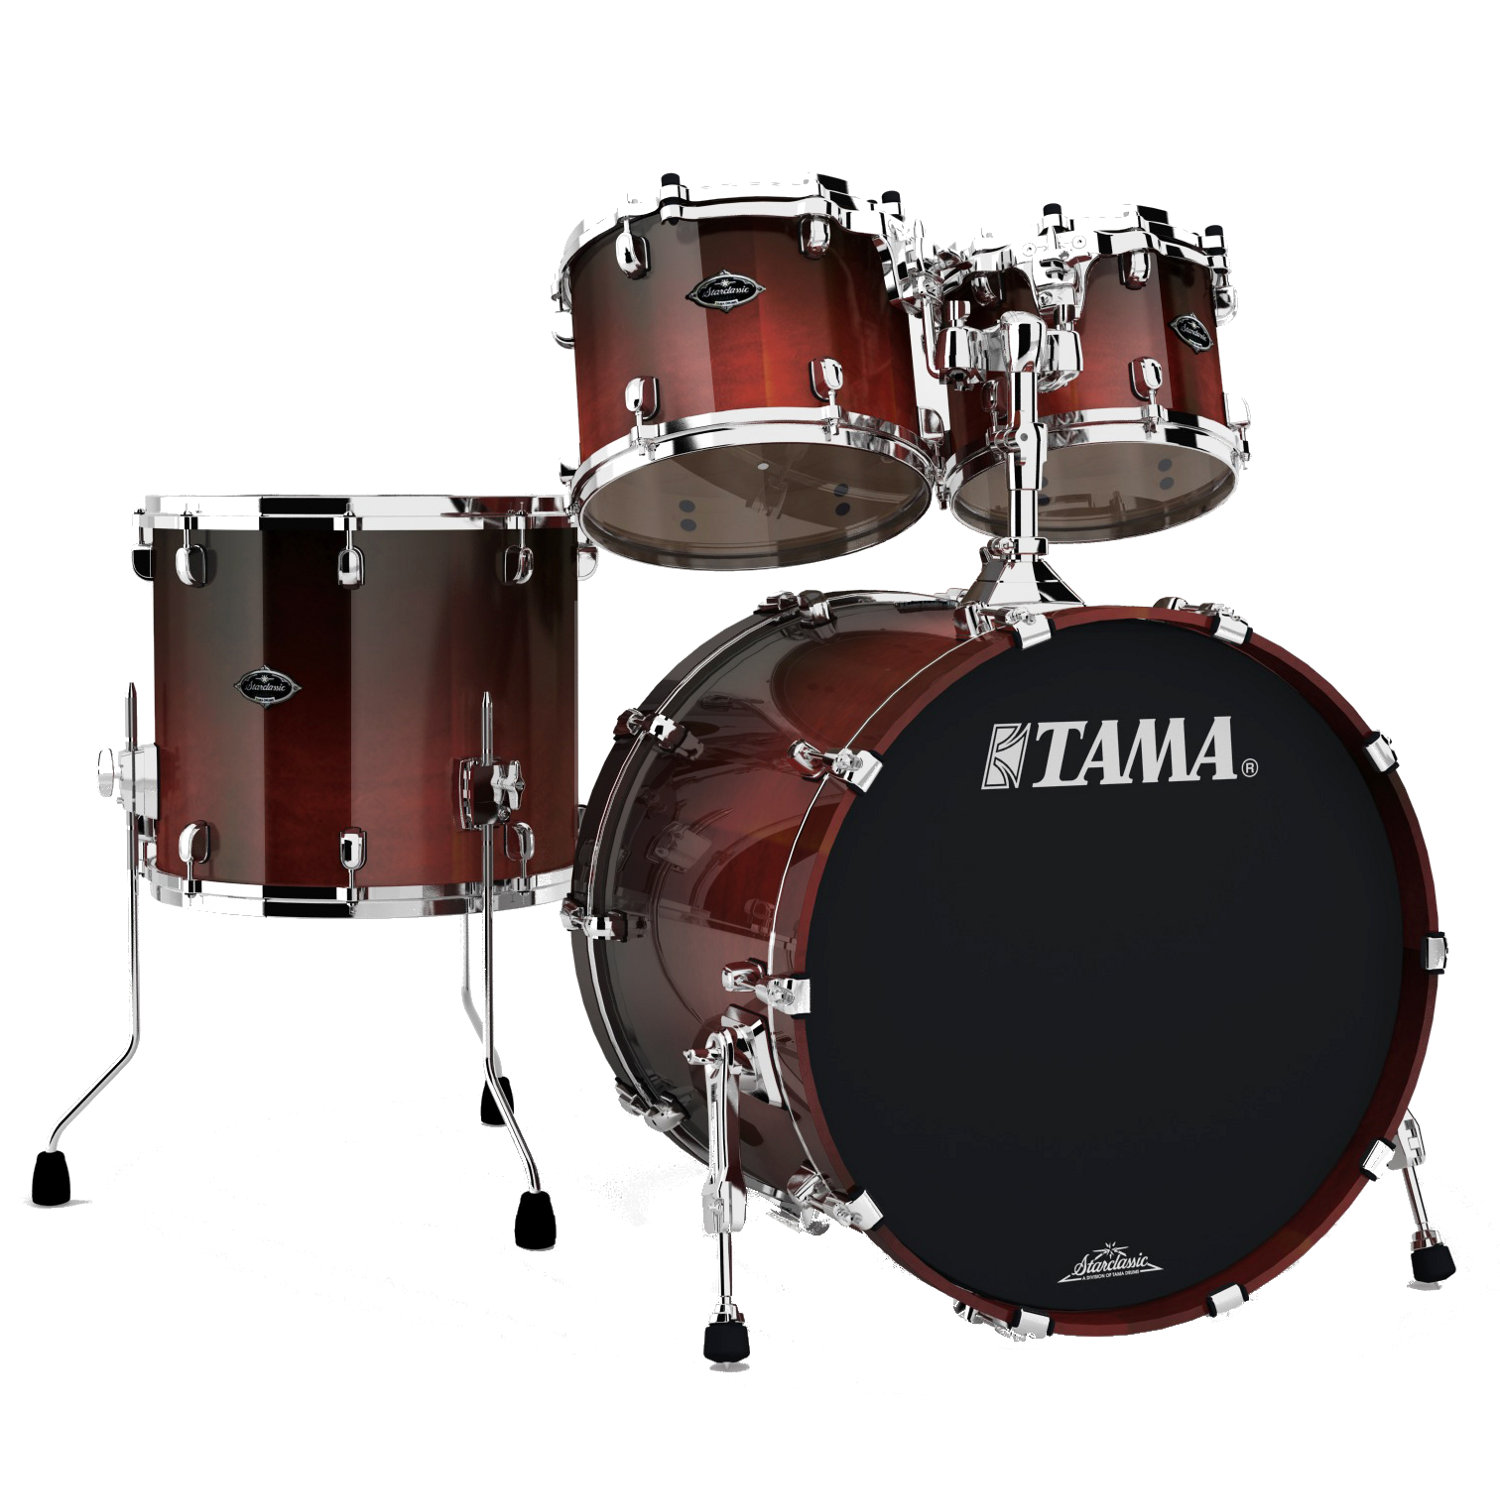 tama pc42s dcf starclassic performer bb dark cherry fade kaufen bax shop. Black Bedroom Furniture Sets. Home Design Ideas